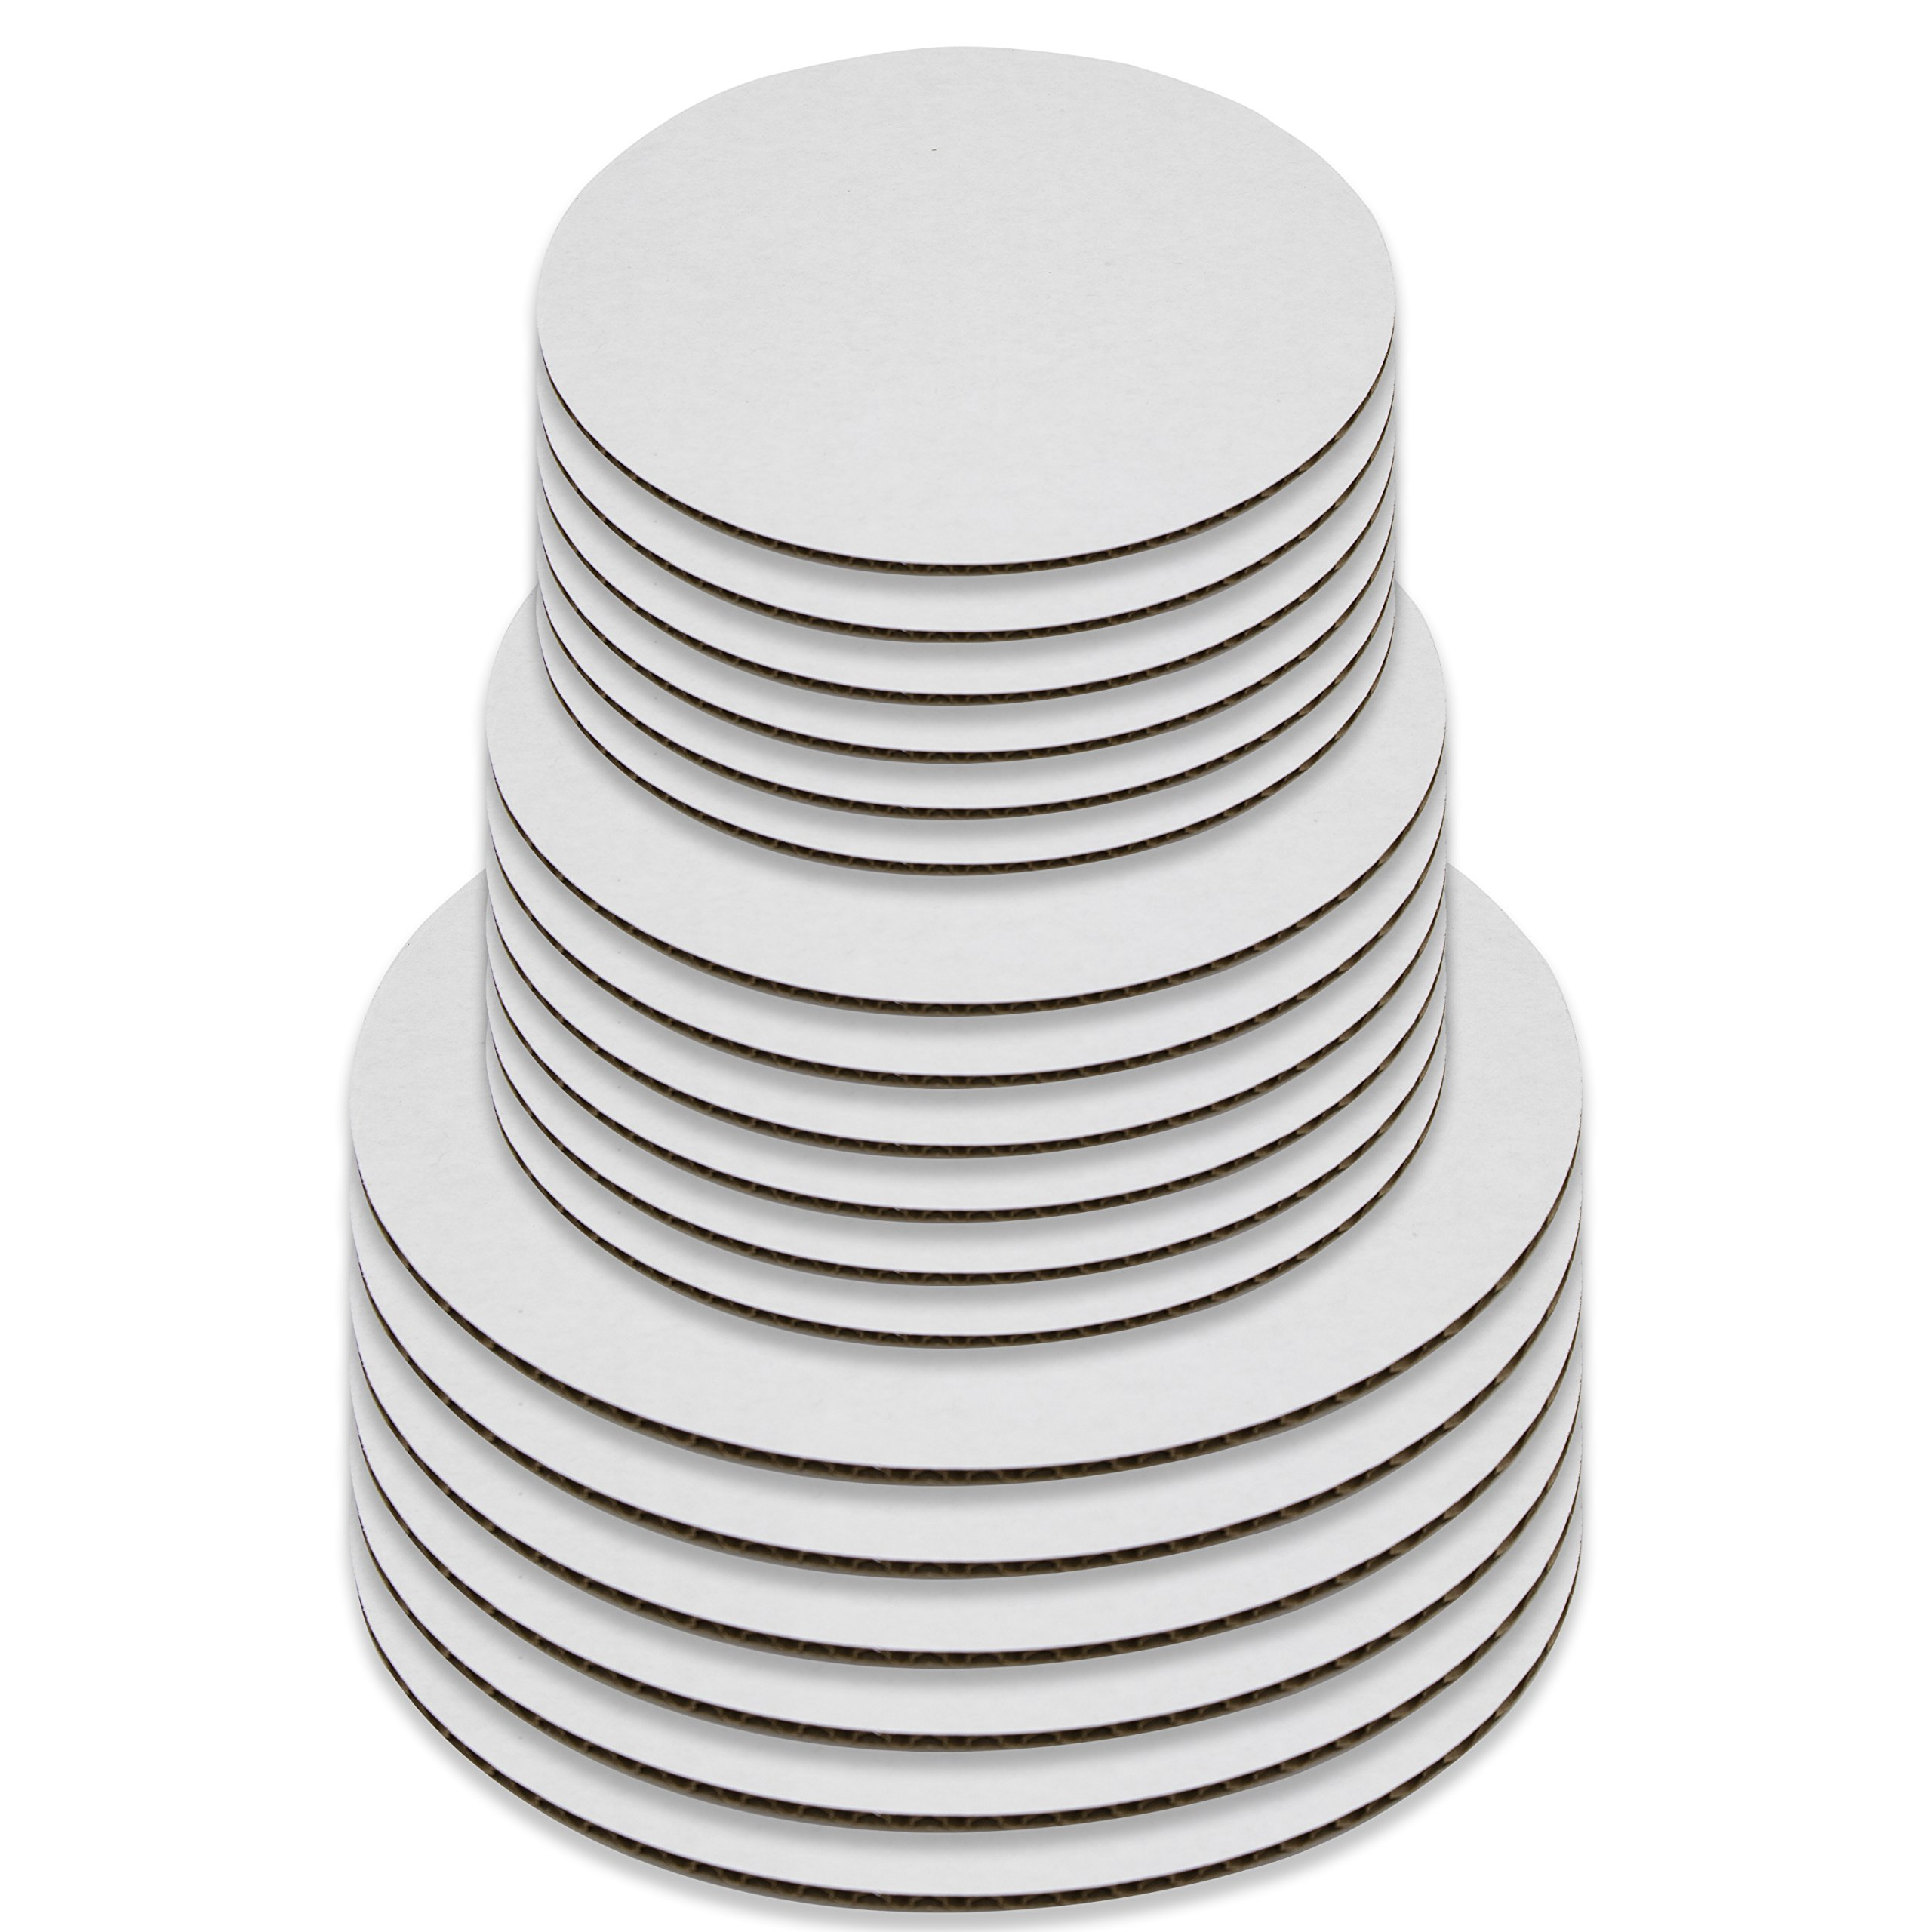 18 Cake Boards, White Round Cake Circle base - 8, 10 and 12 inch, 6 of each Size